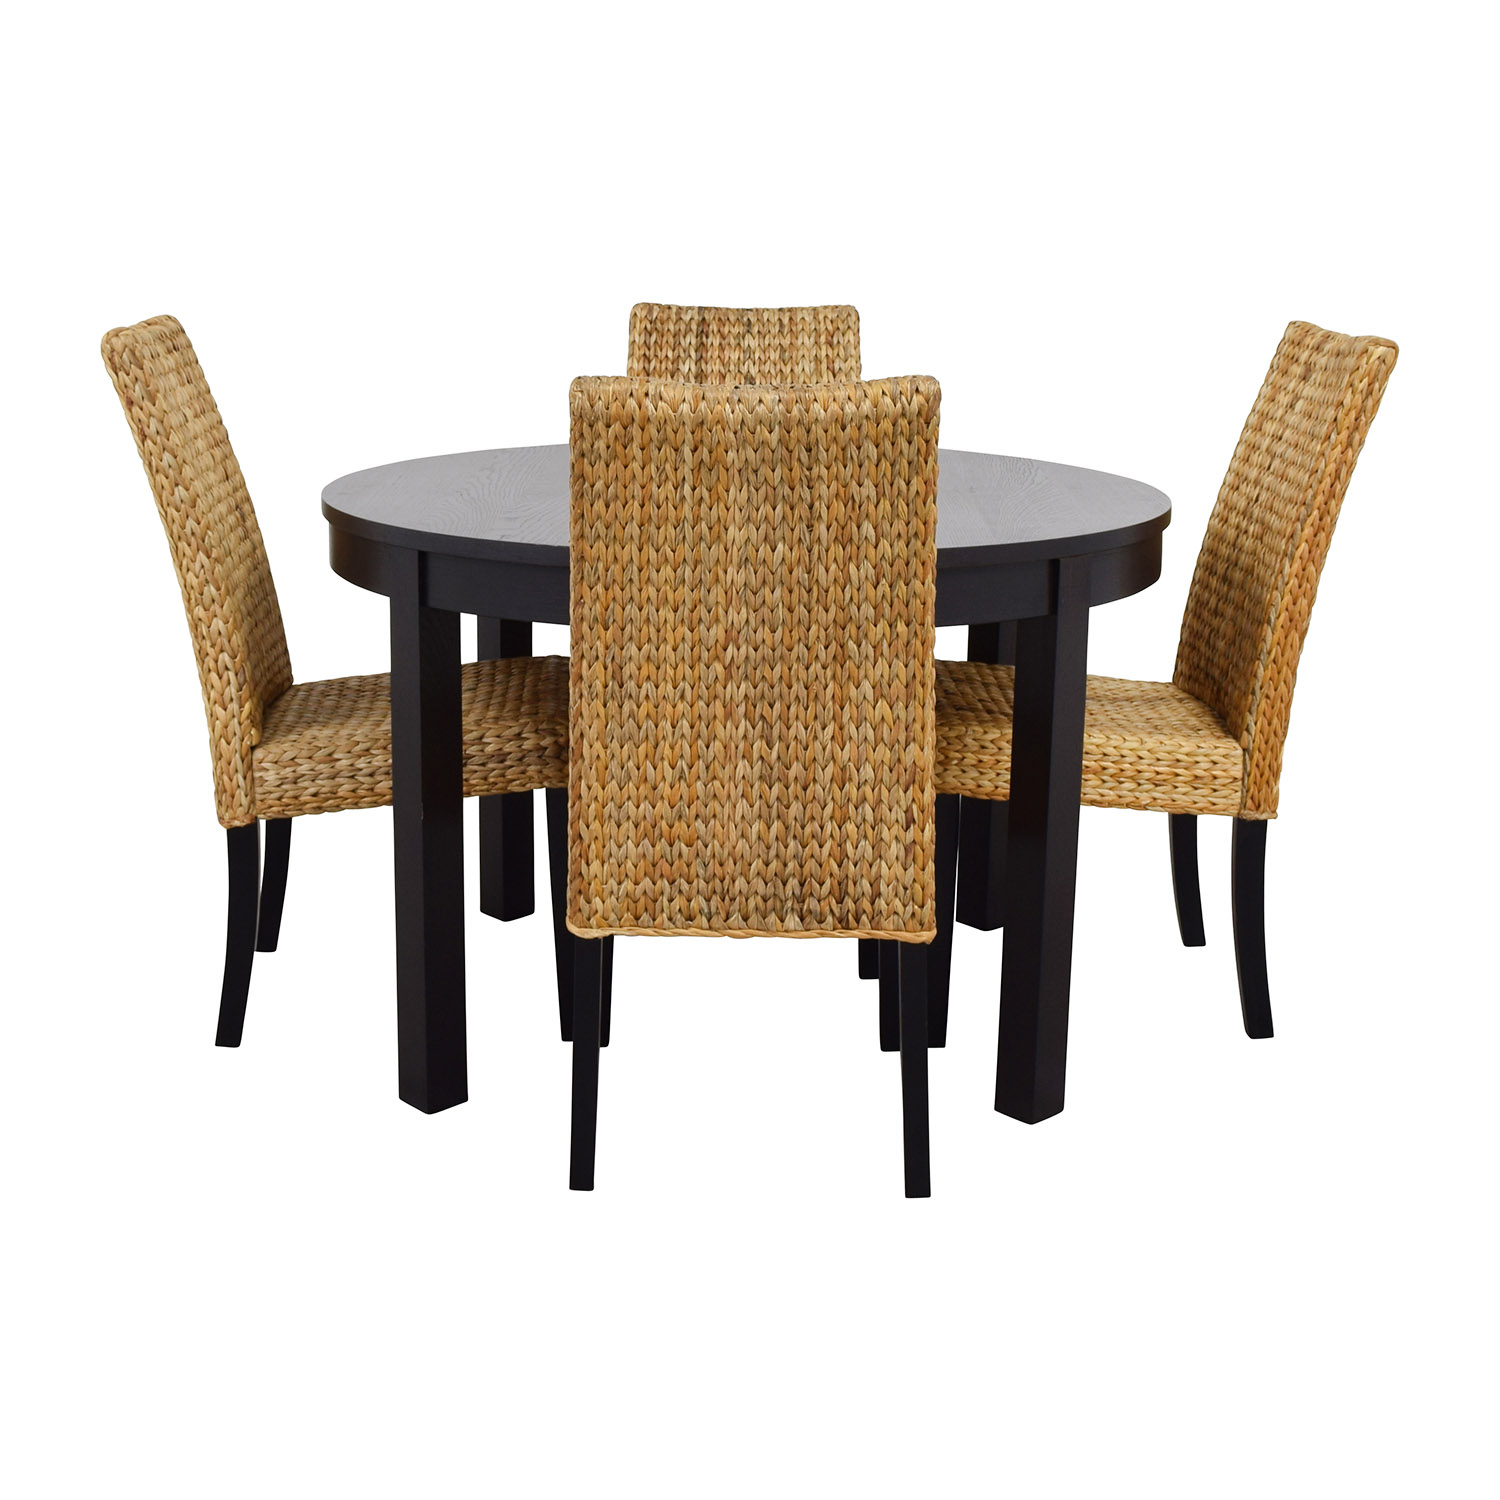 66 off macy 39 s ikea round black dining table set with for Dinner table set for 4